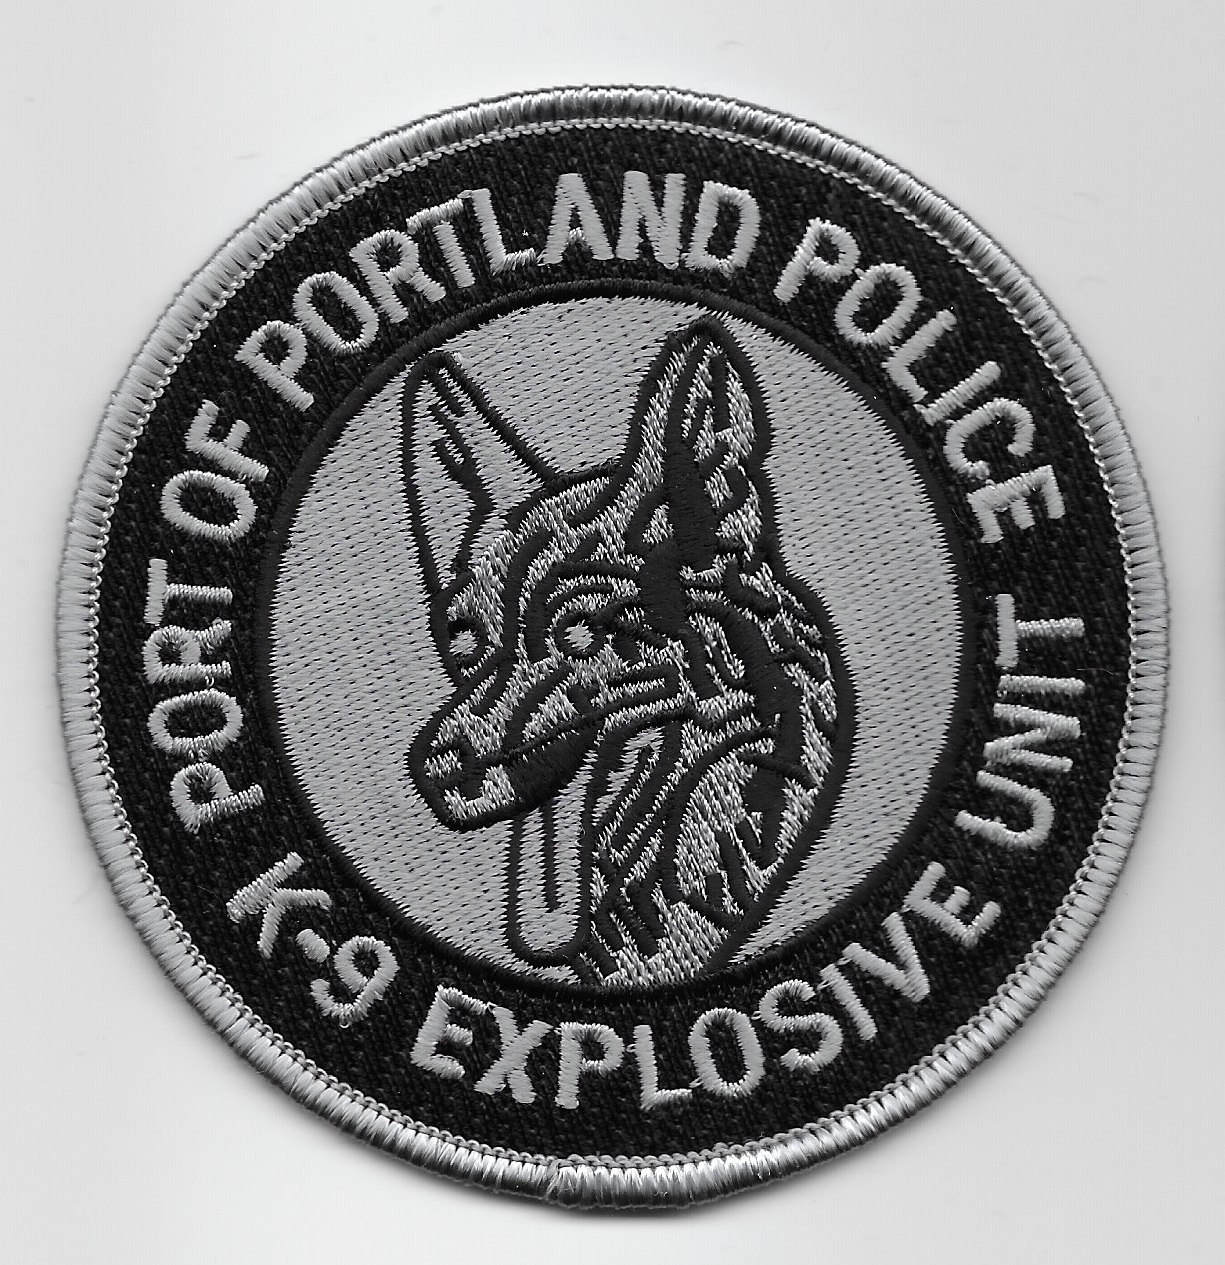 Port of Portland k9 k-9 Police EOD OR